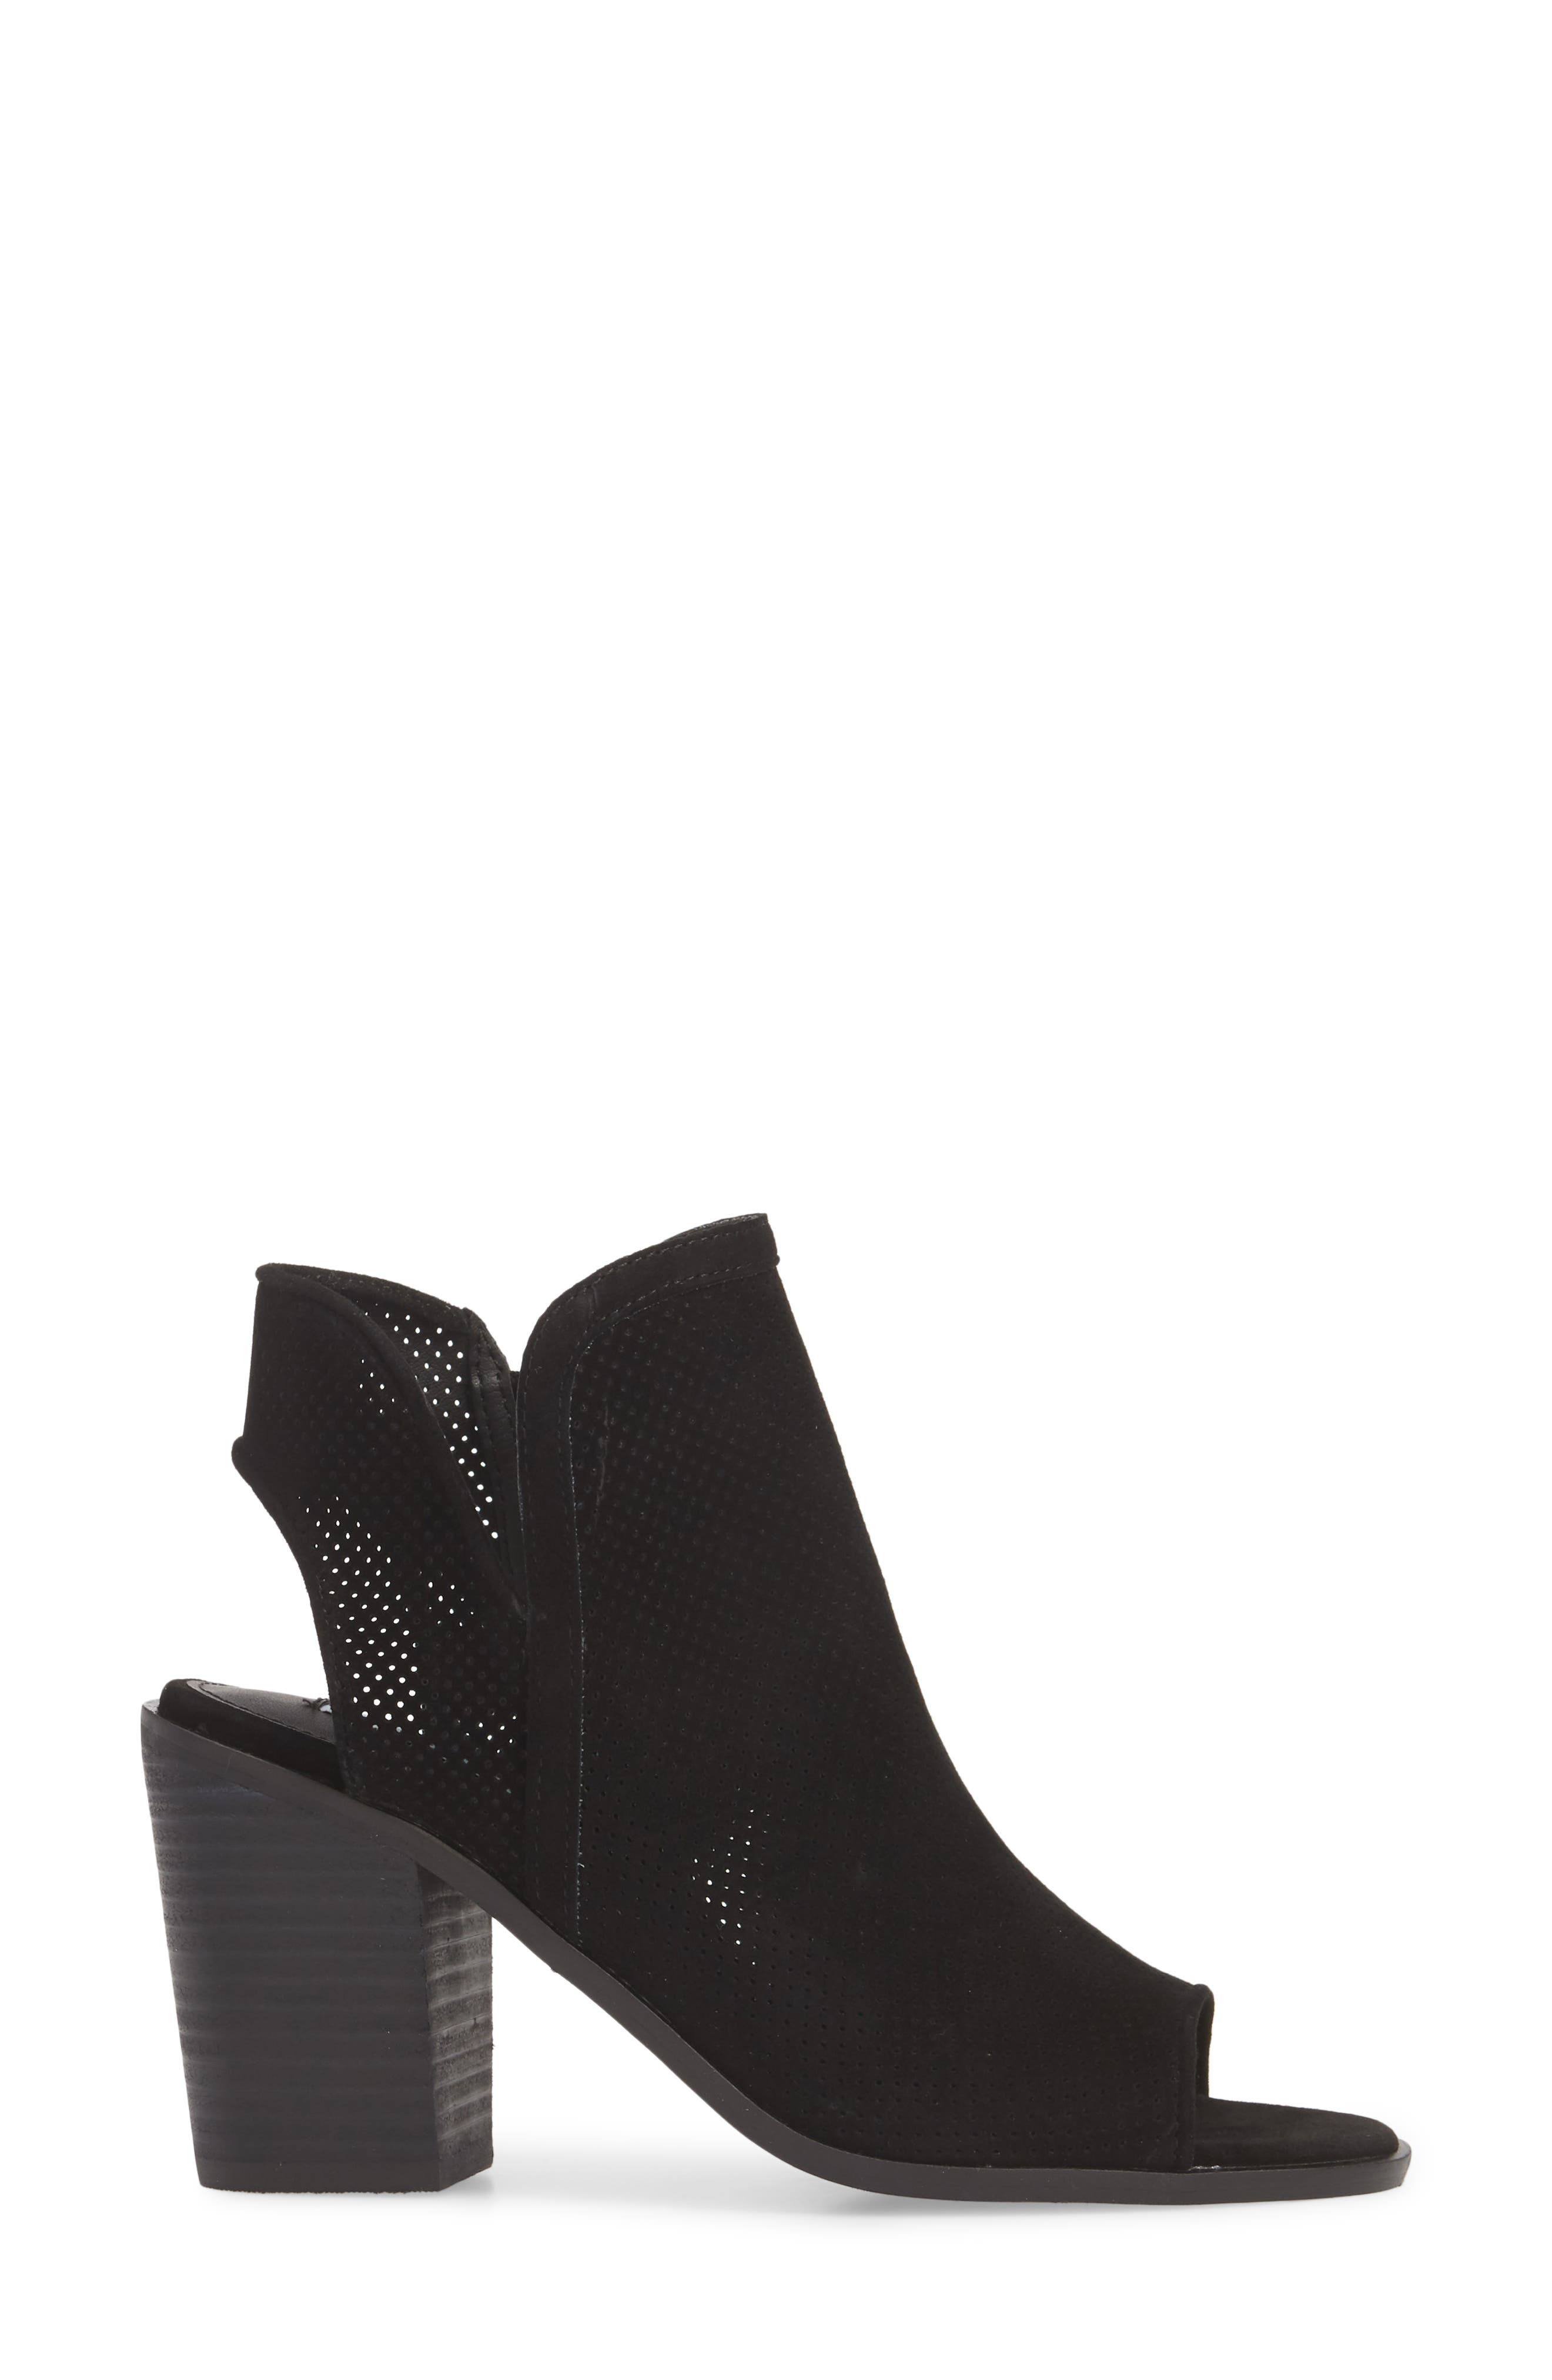 Maxine Perforated Bootie,                             Alternate thumbnail 3, color,                             006